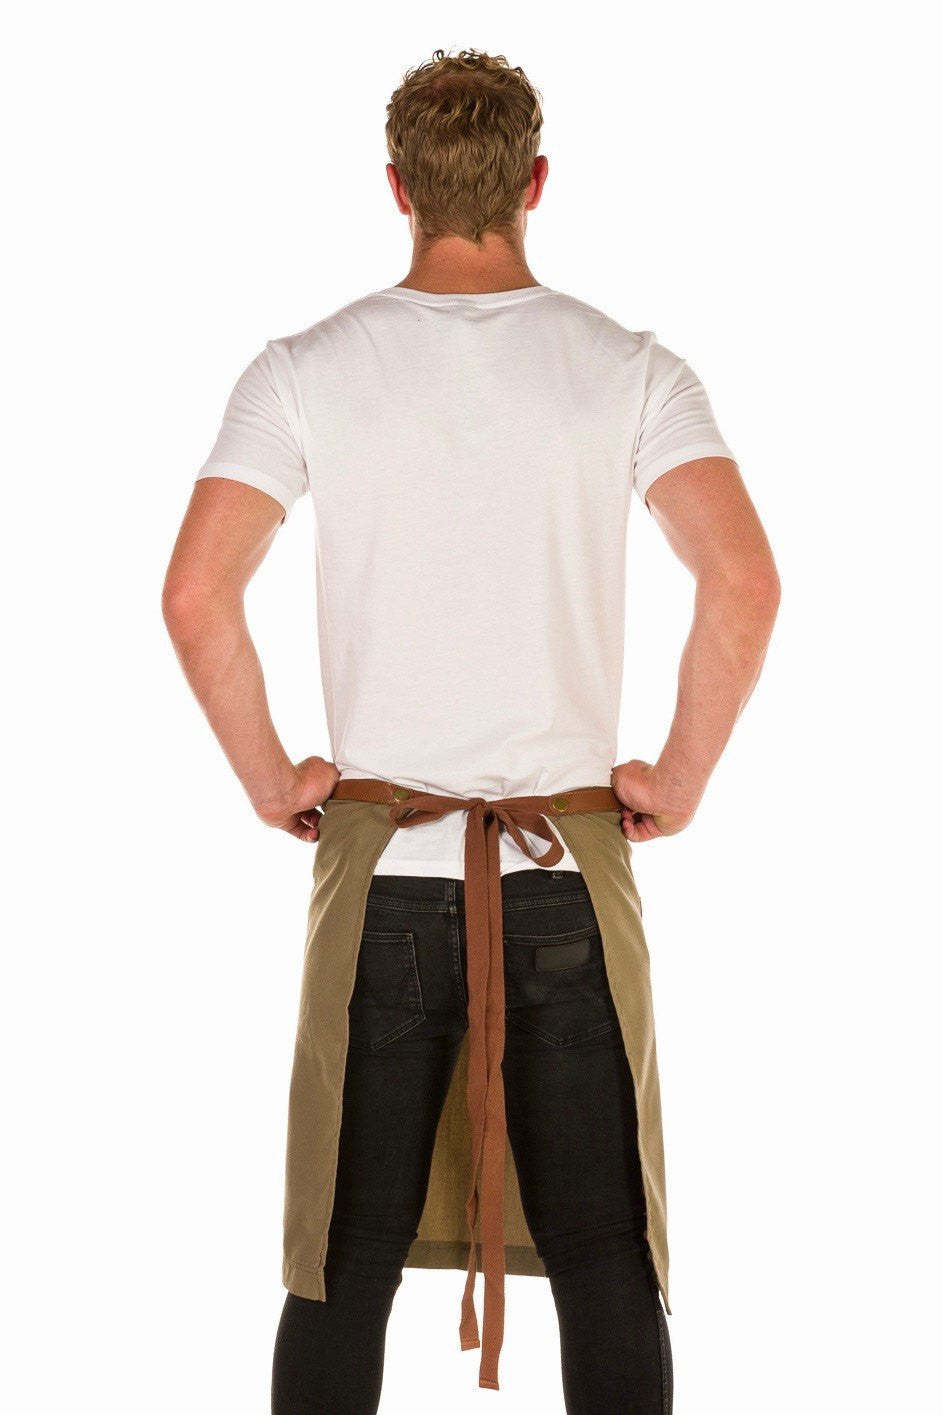 UBD ARCHER Waist Apron with PU Leather studded strap - CARAMEL